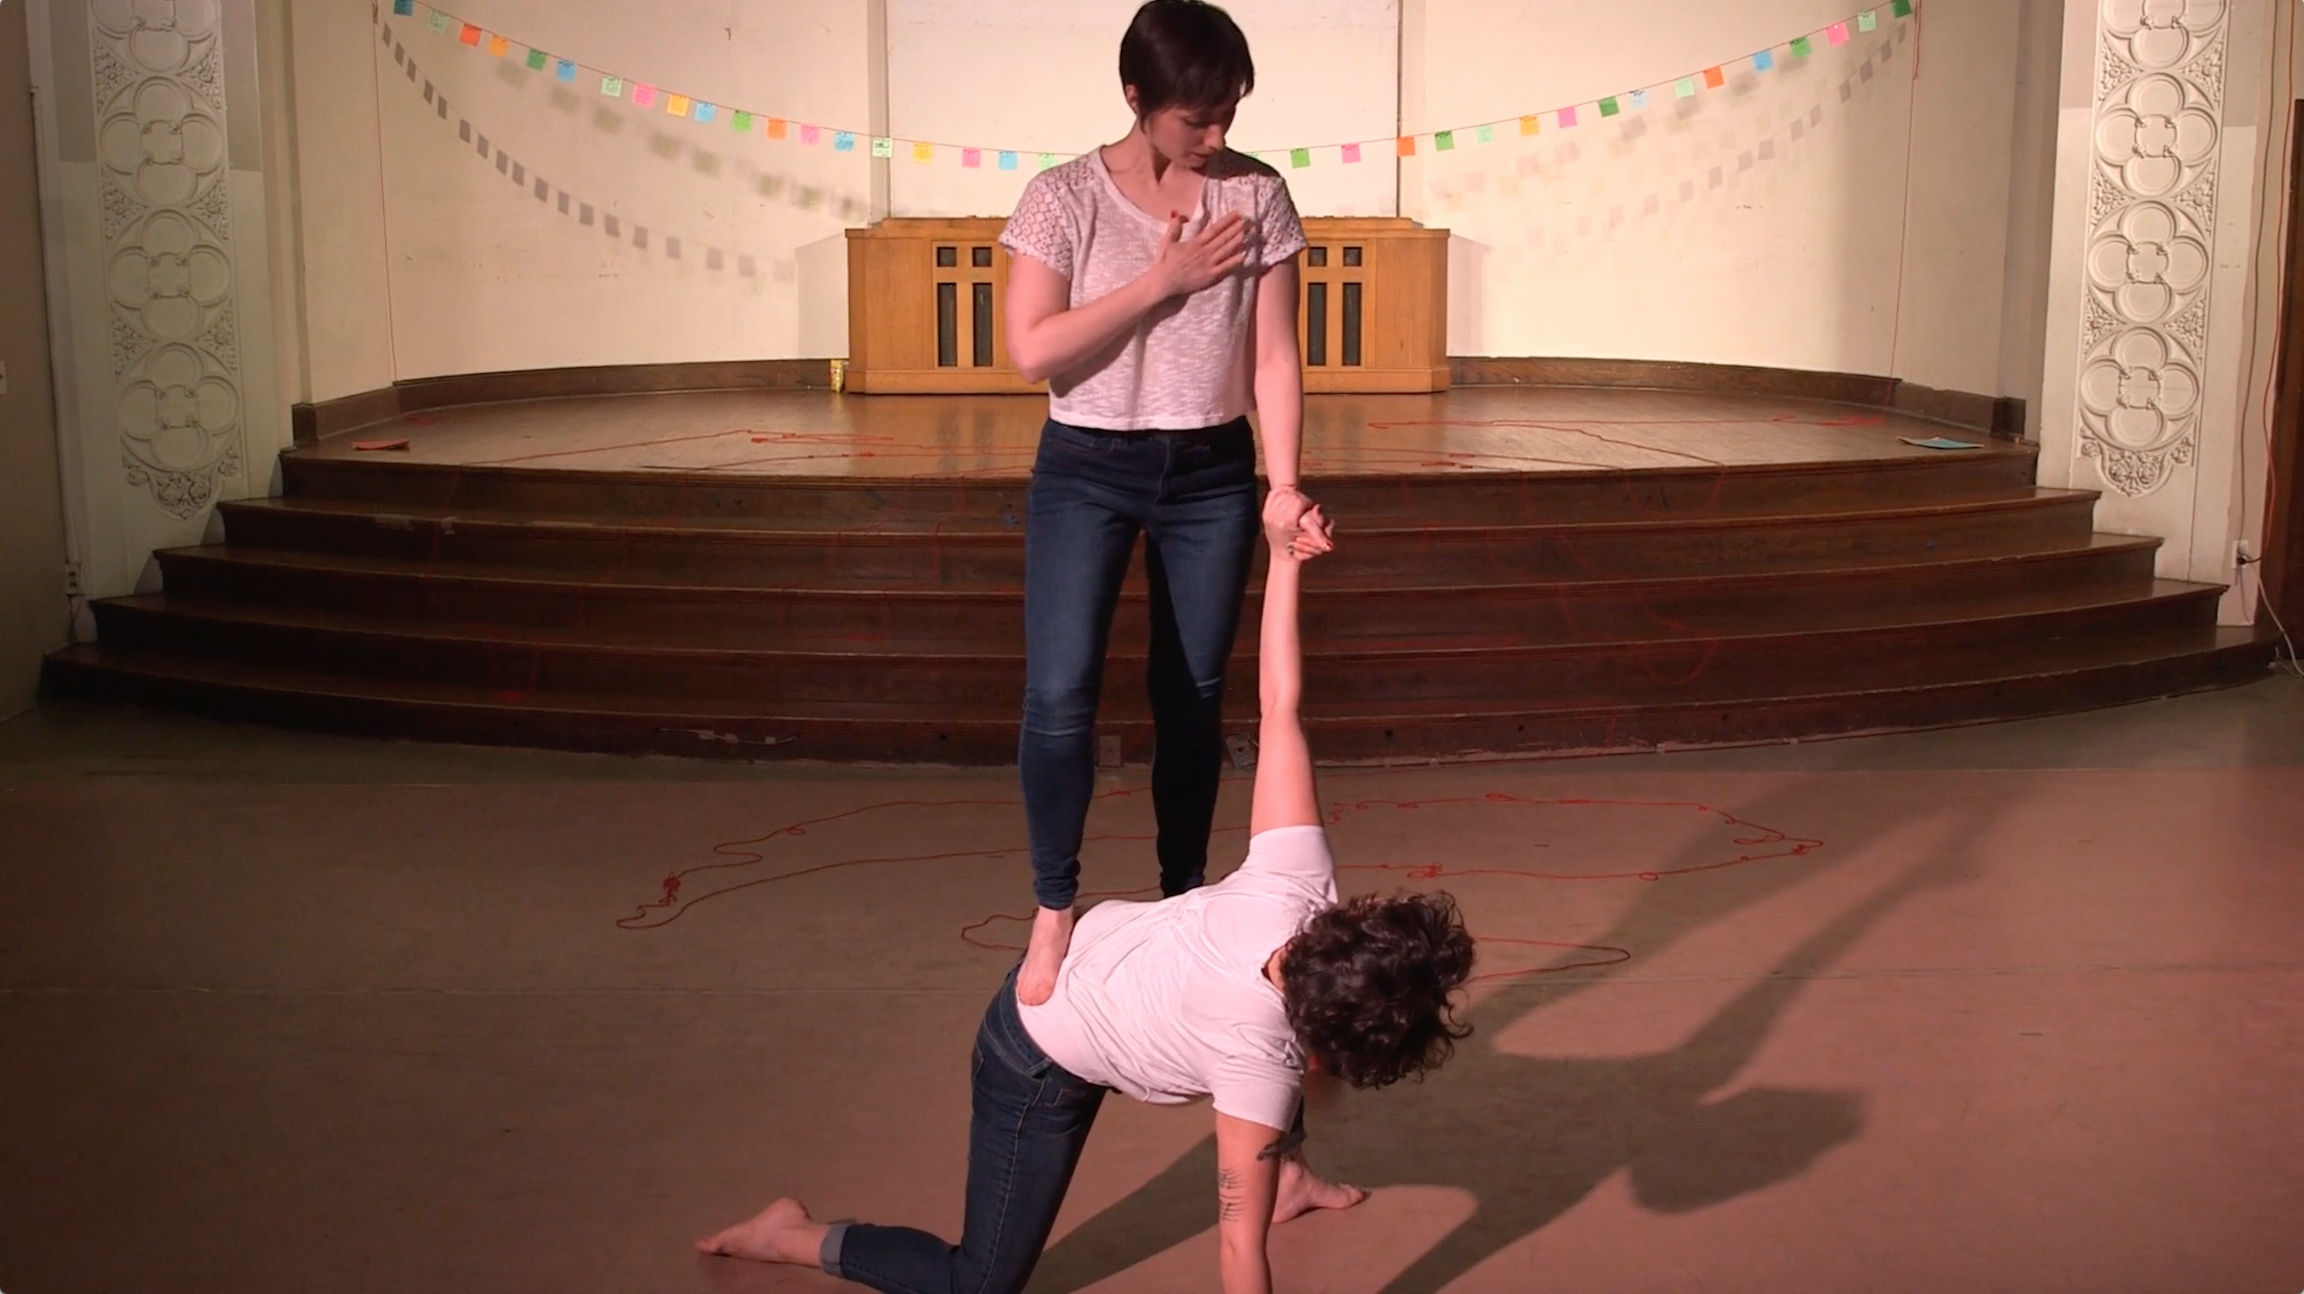 "Featured image: Maggie Robinson and Allison Sokolowski performing in ""I Am"" at the Chicago Danztheatre Auditorium, as part of the Body Passages culminating event. Maggie balances with one foot, knee, and hand on the floor, as Allison stands on Maggie's lower back. The performers hold each other's left hands and look at each other. Both are barefoot and wear white t-shirts and jeans. Behind them is a well-lit stage, with a string of colorful paper suspended across it. Still from a video by John Borowski."